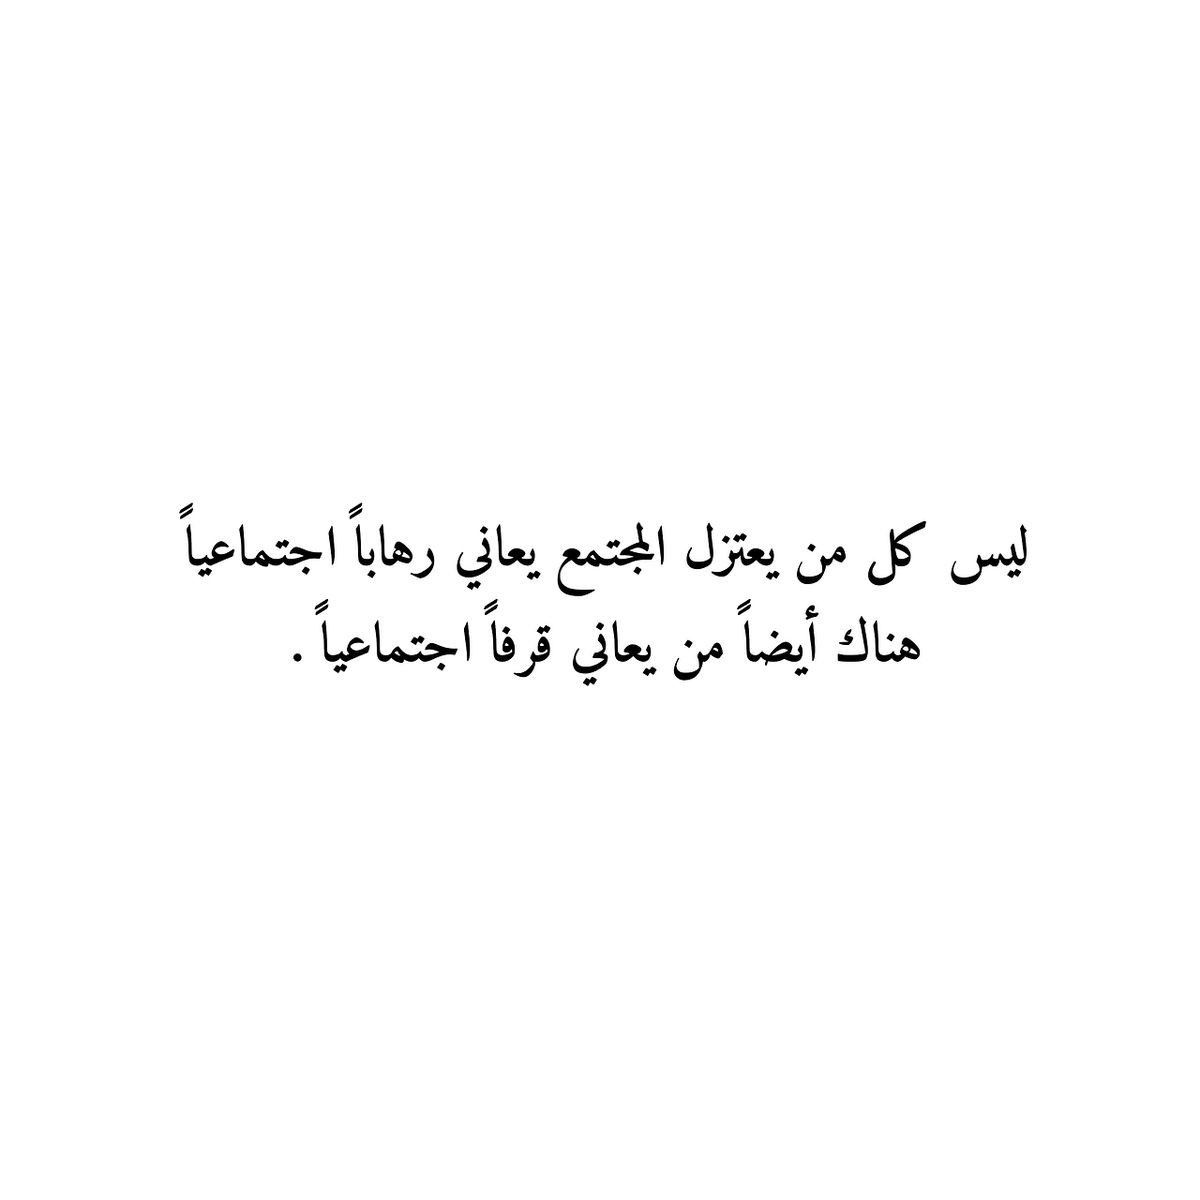 Quotes In Arabic Pinsana Banbouk On Bl3Arabi  Pinterest  Arabic Quotes